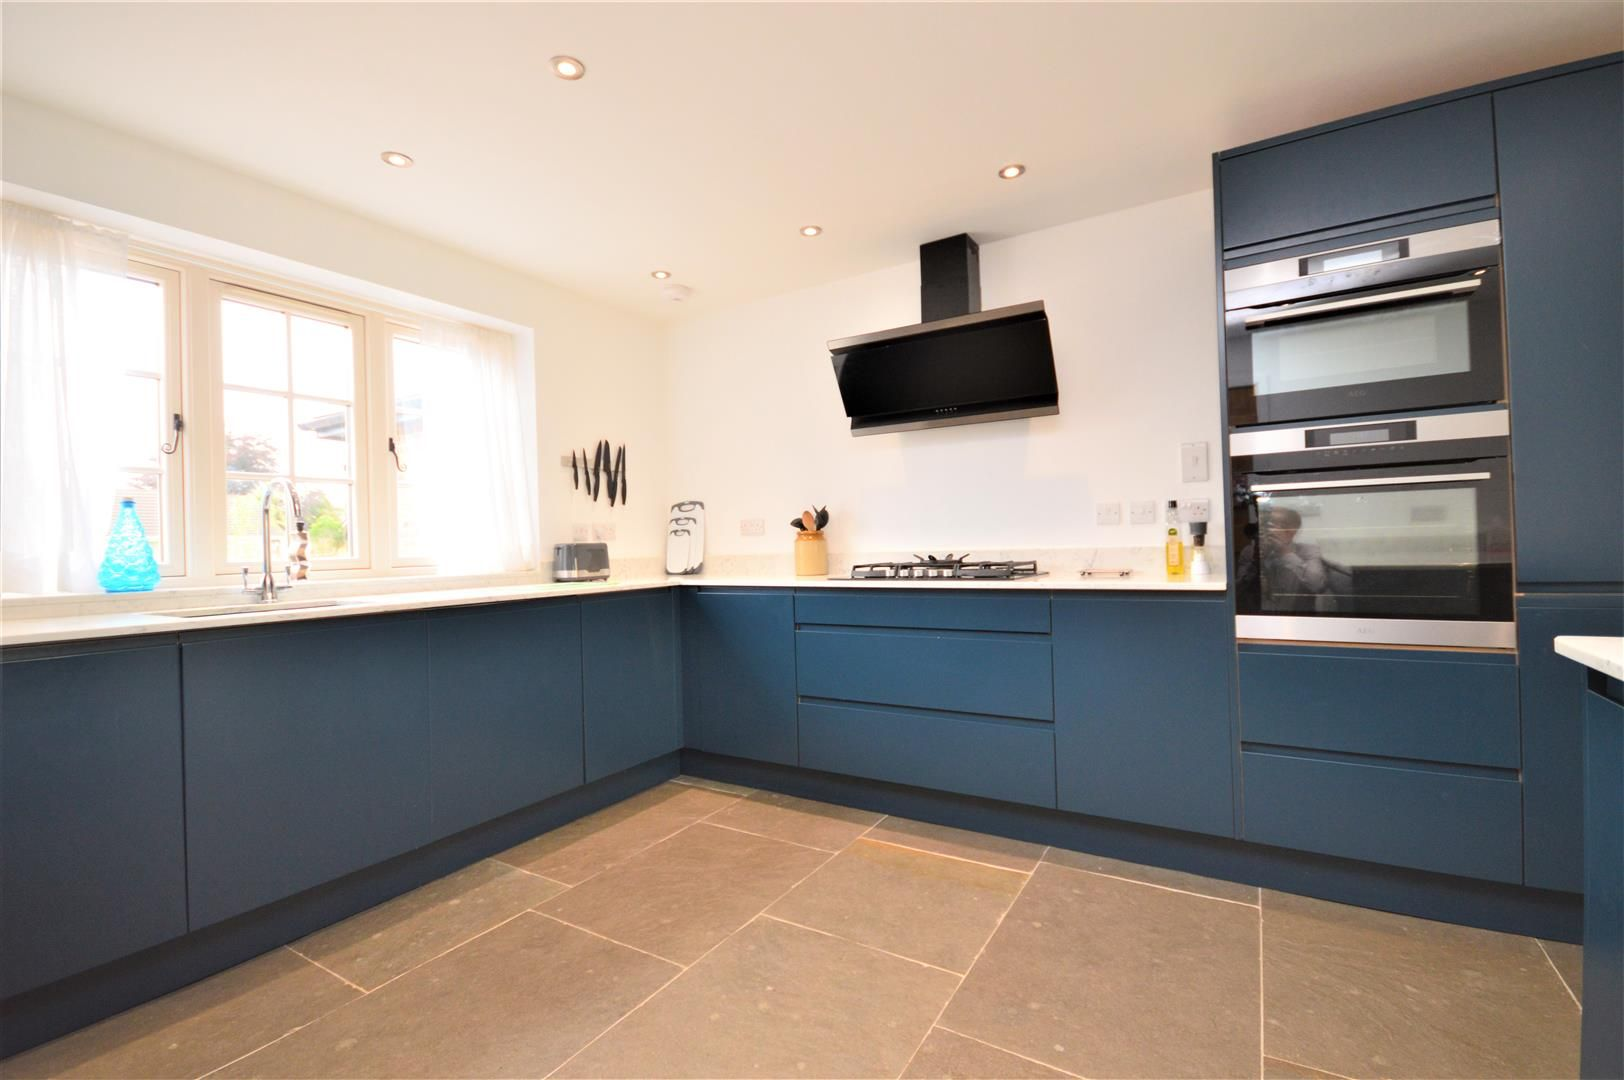 4 bed detached for sale in Marden  - Property Image 24